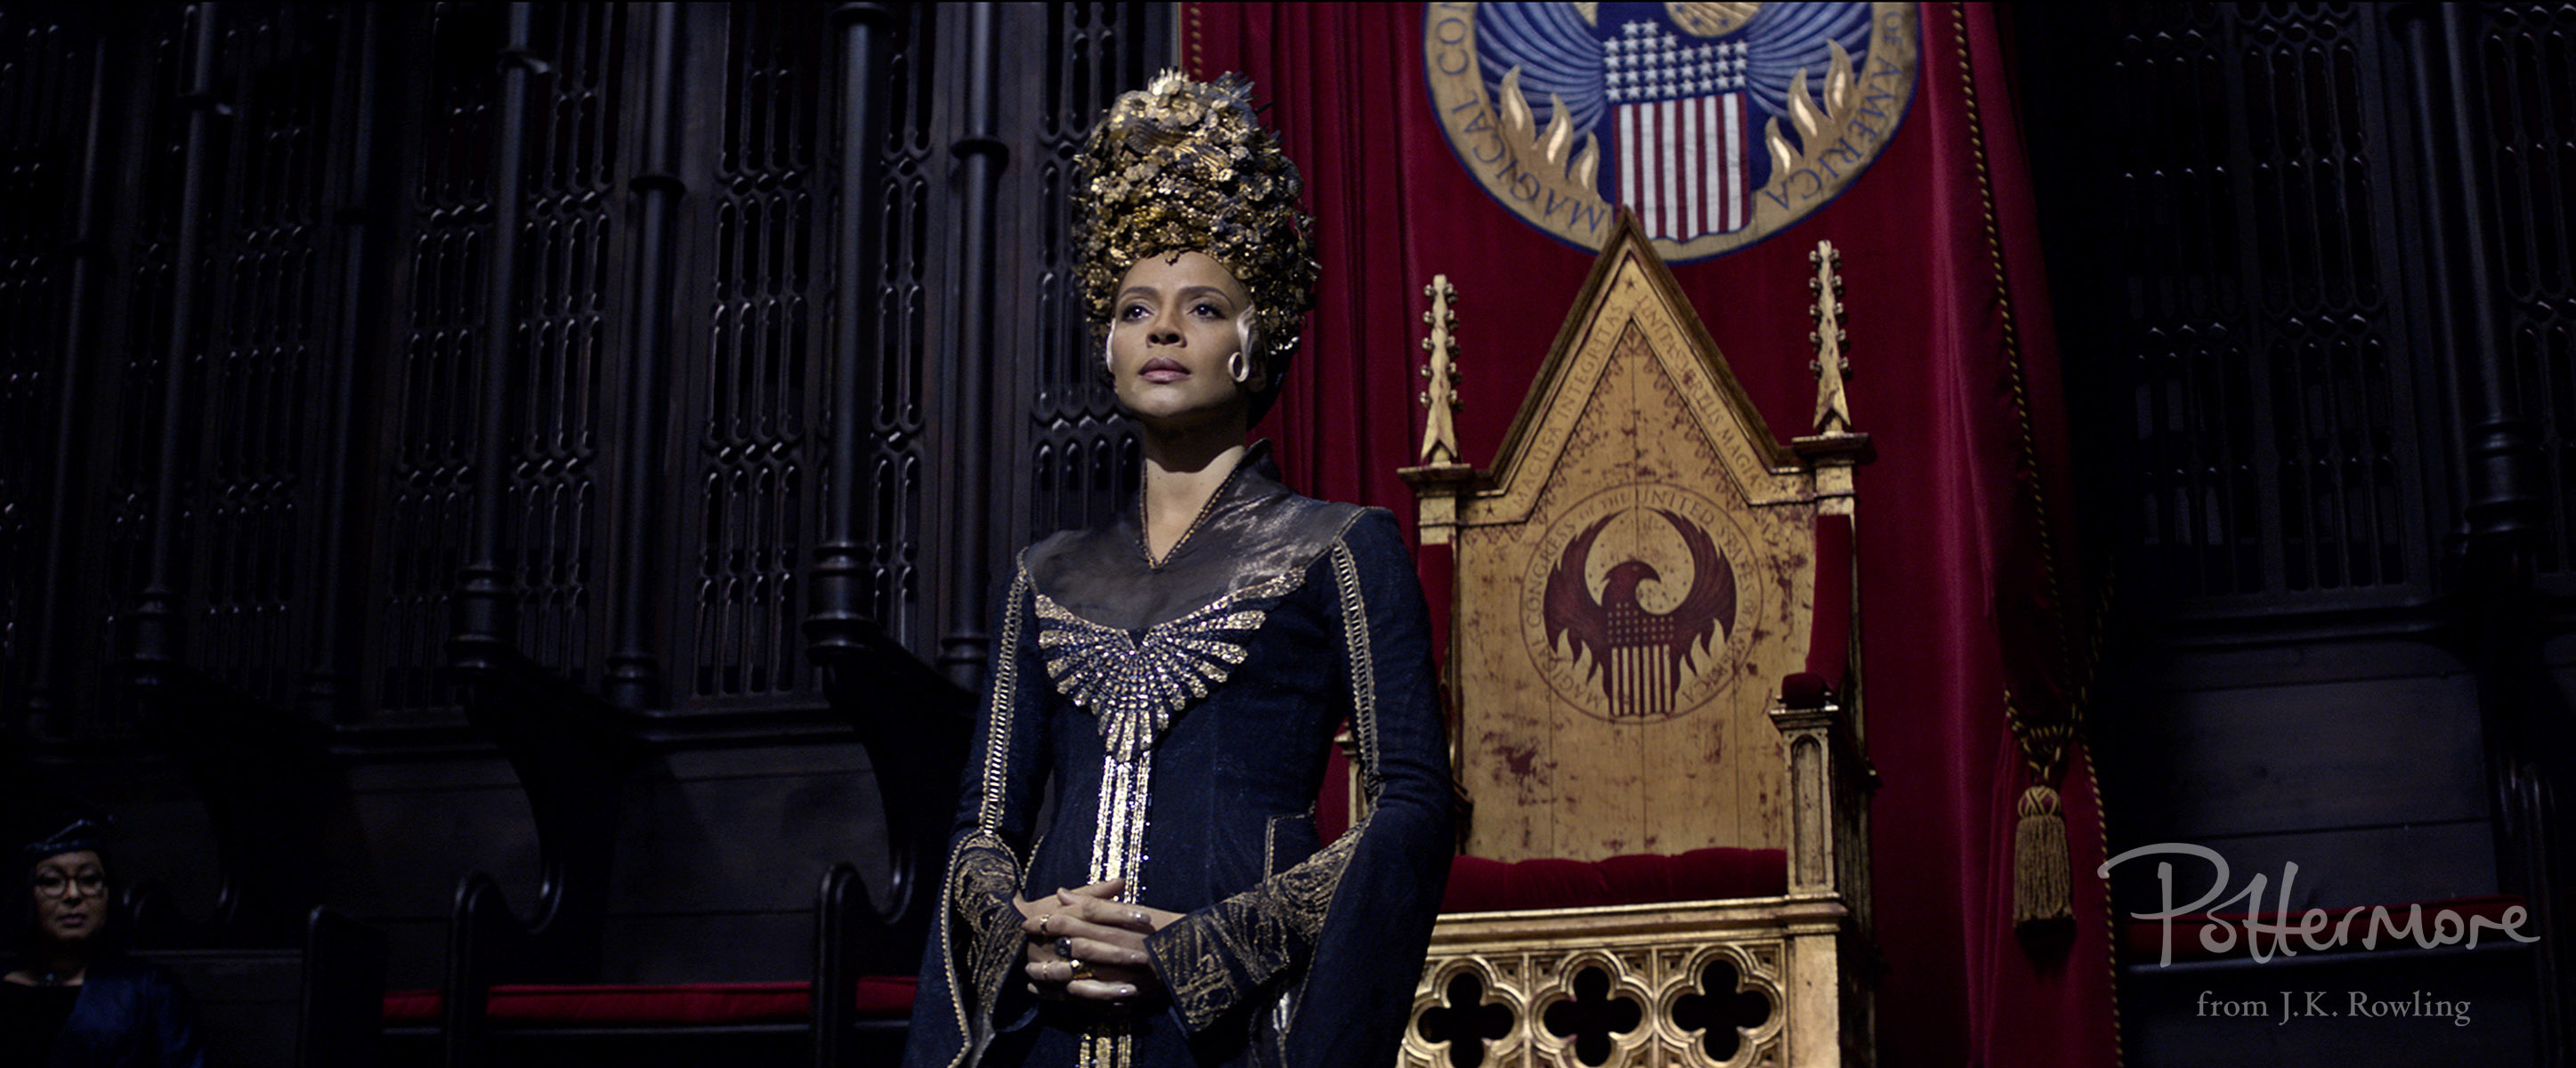 Seraphina Picquery in Fantastic Beasts and Where to Find Them